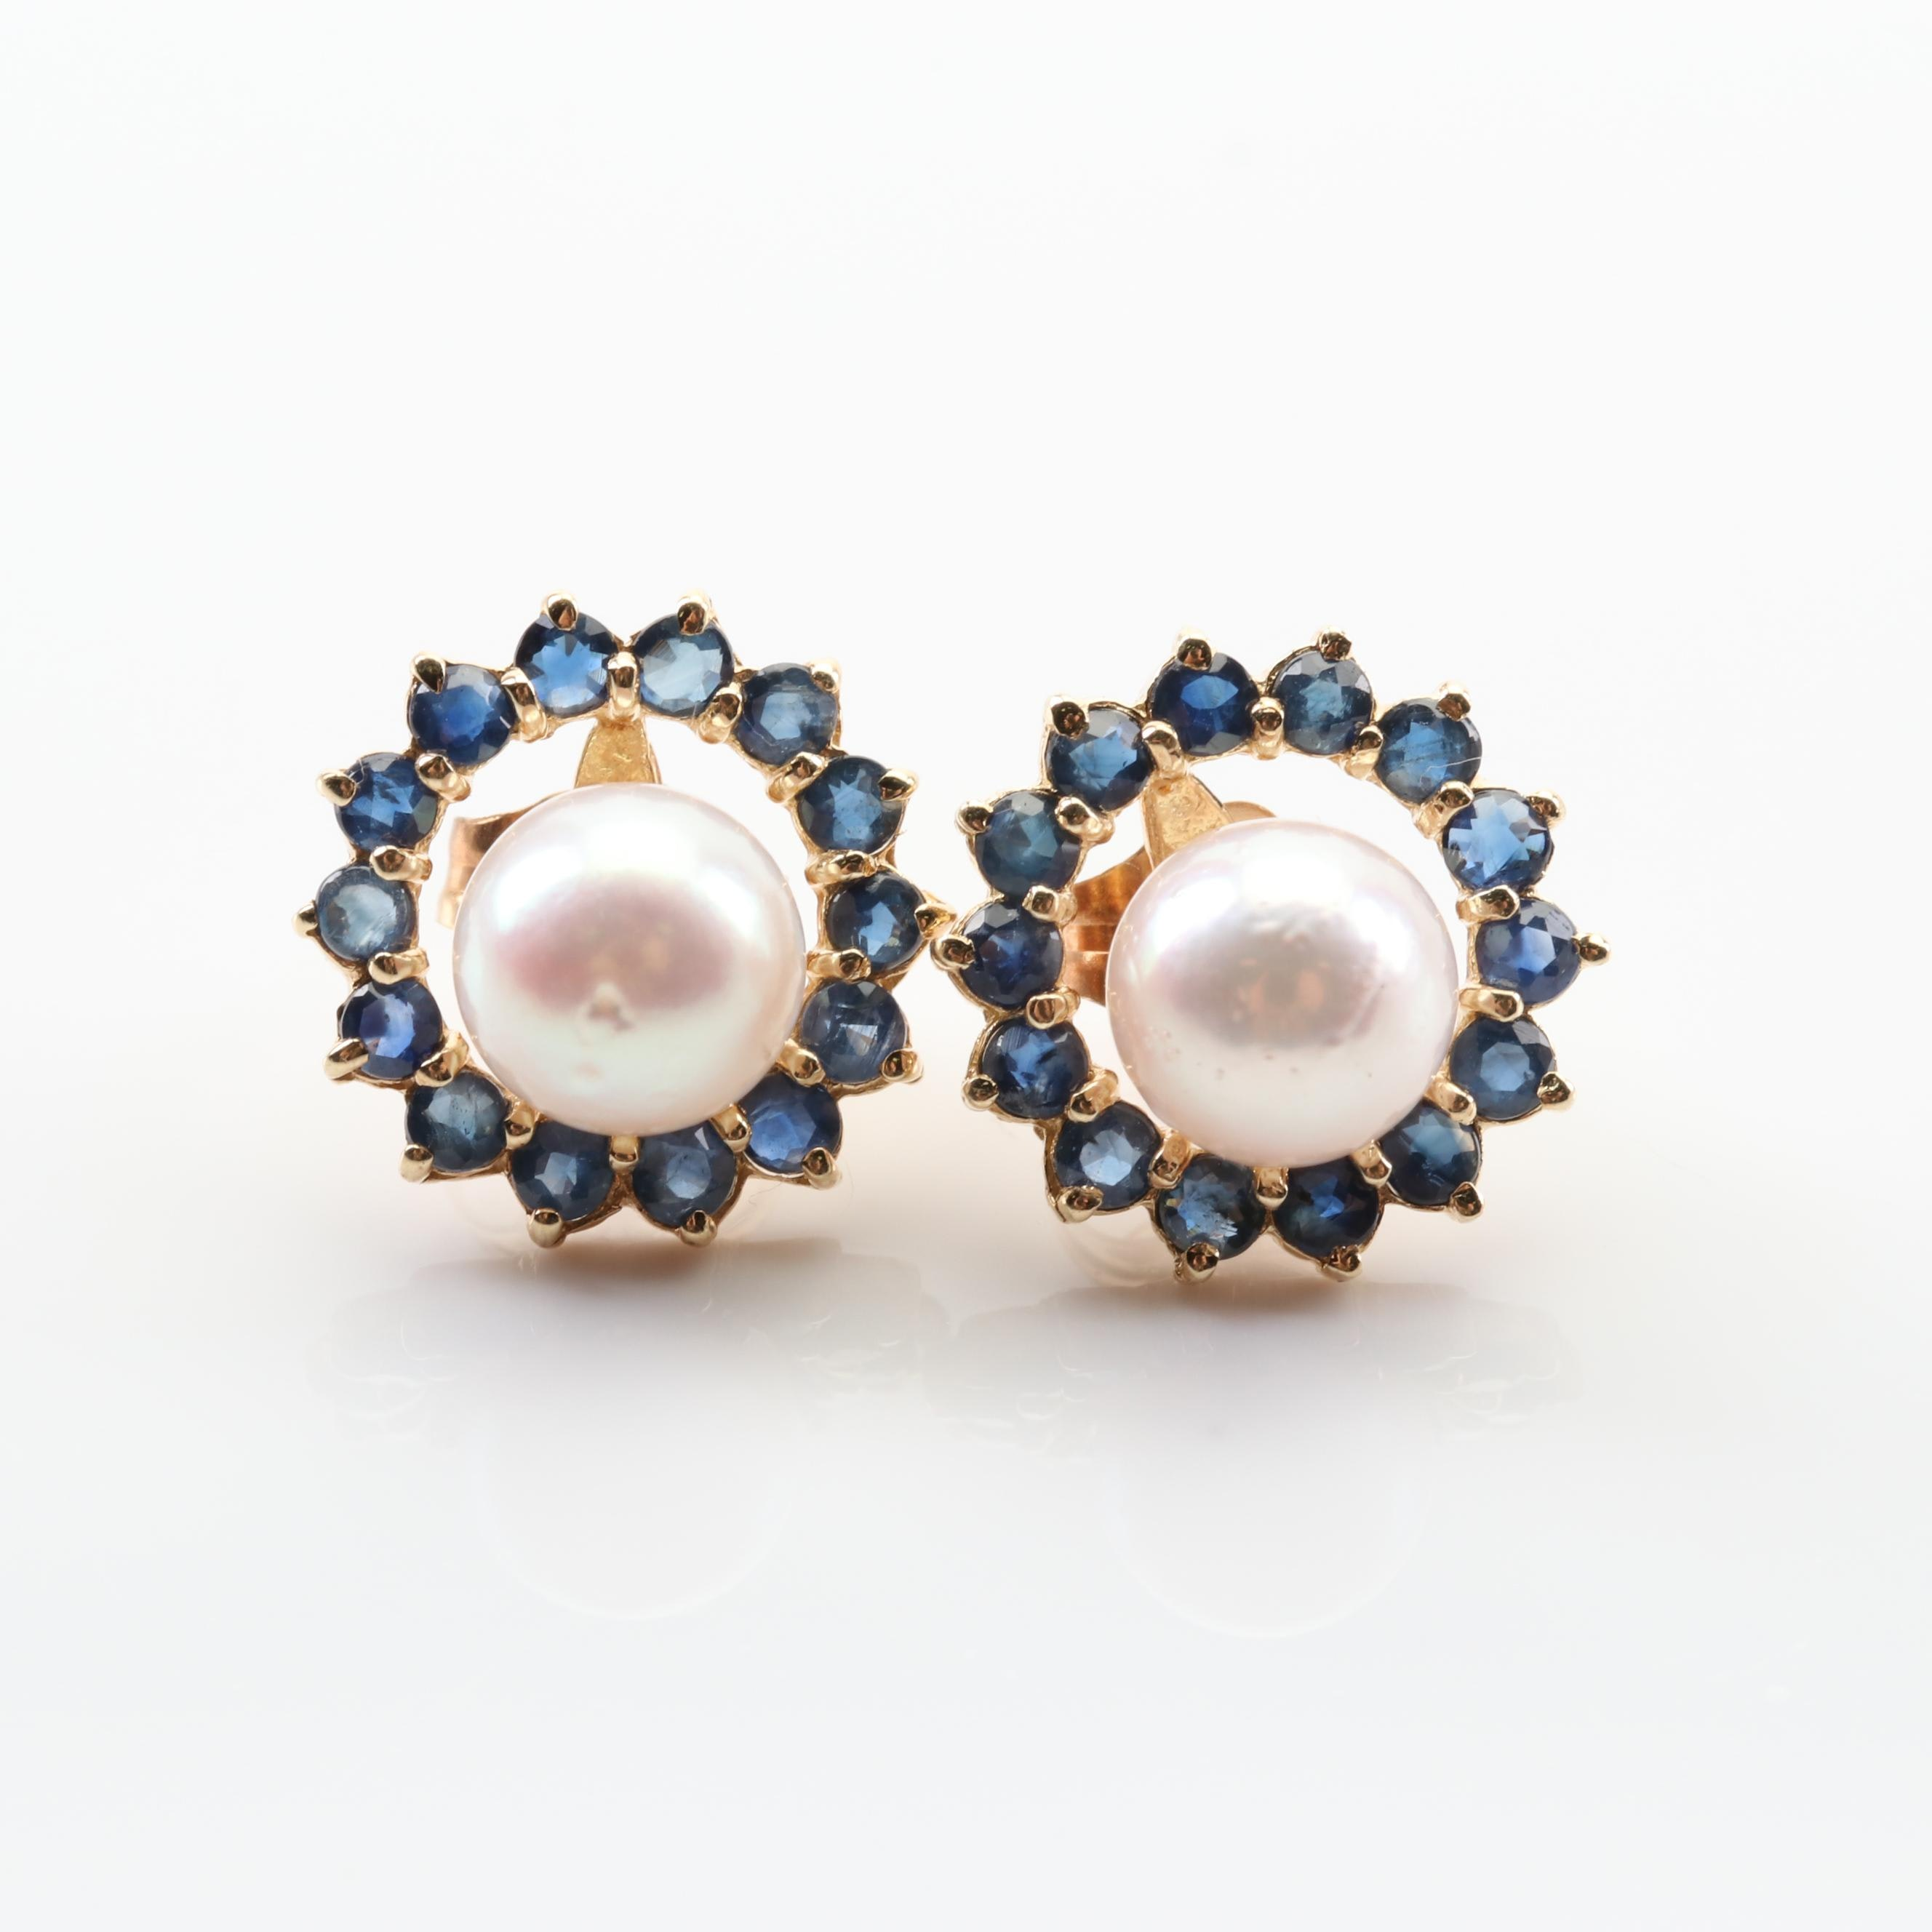 14K Yellow Gold Cultured Pearl Stud Earrings with Sapphire Jackets